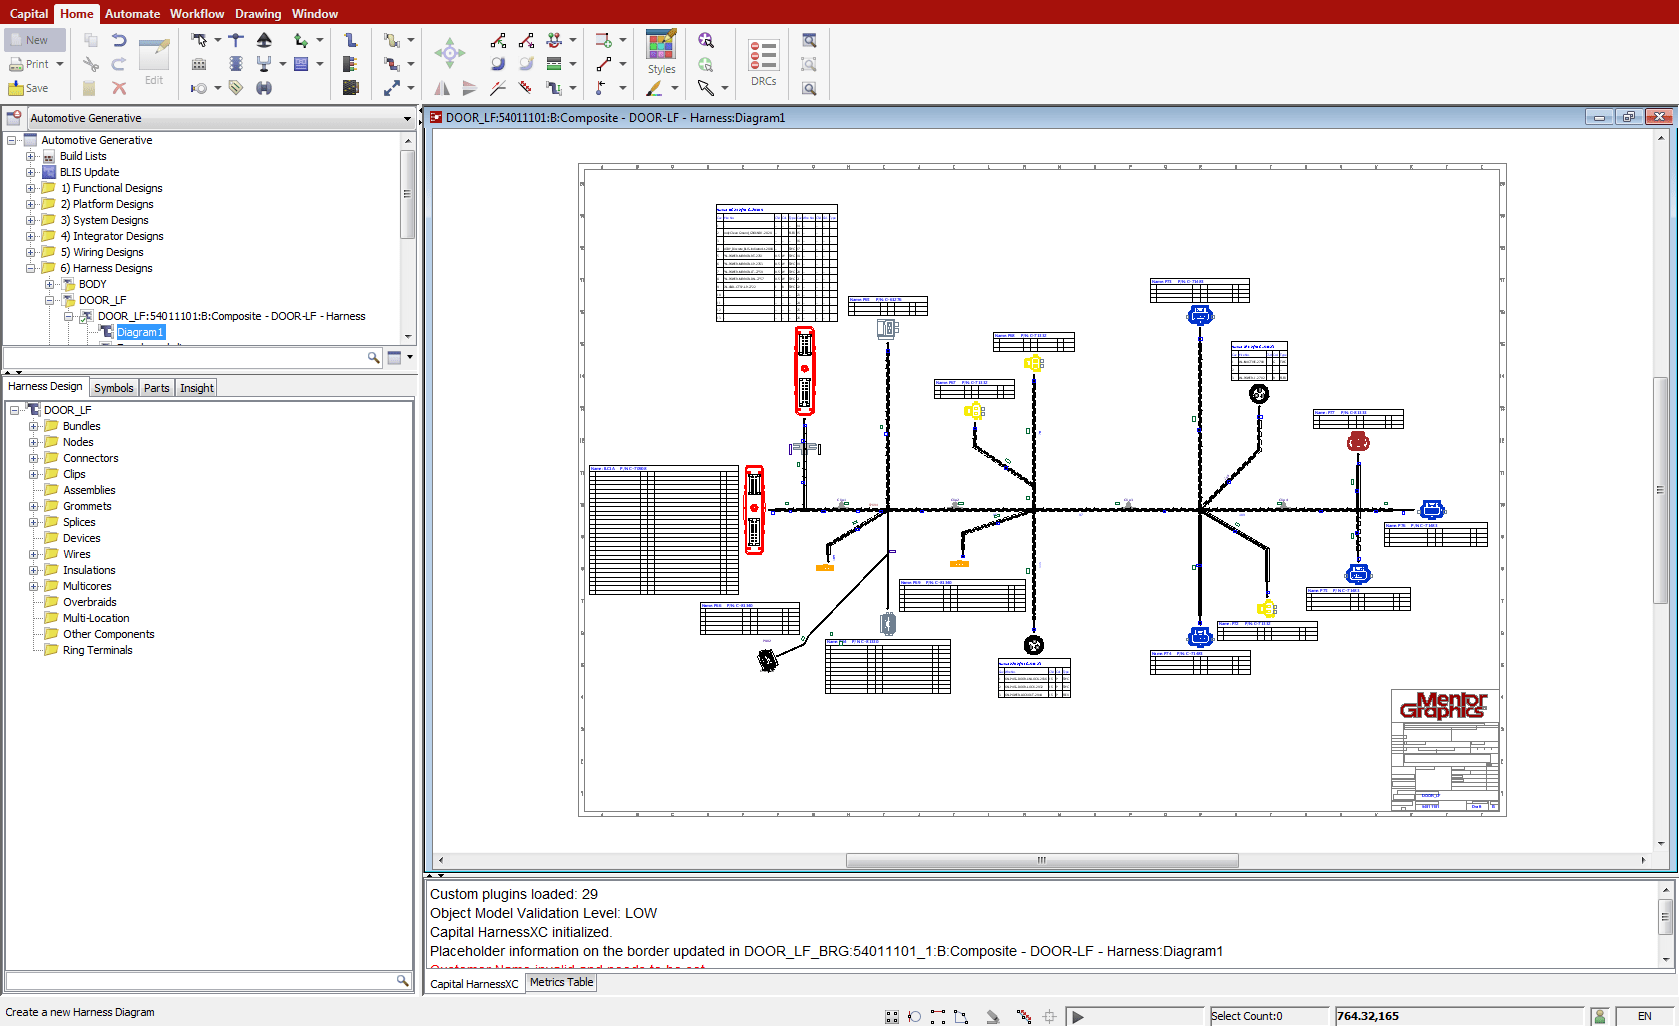 capital harnessxc mentor graphics wire harness standards print [ 1679 x 1026 Pixel ]